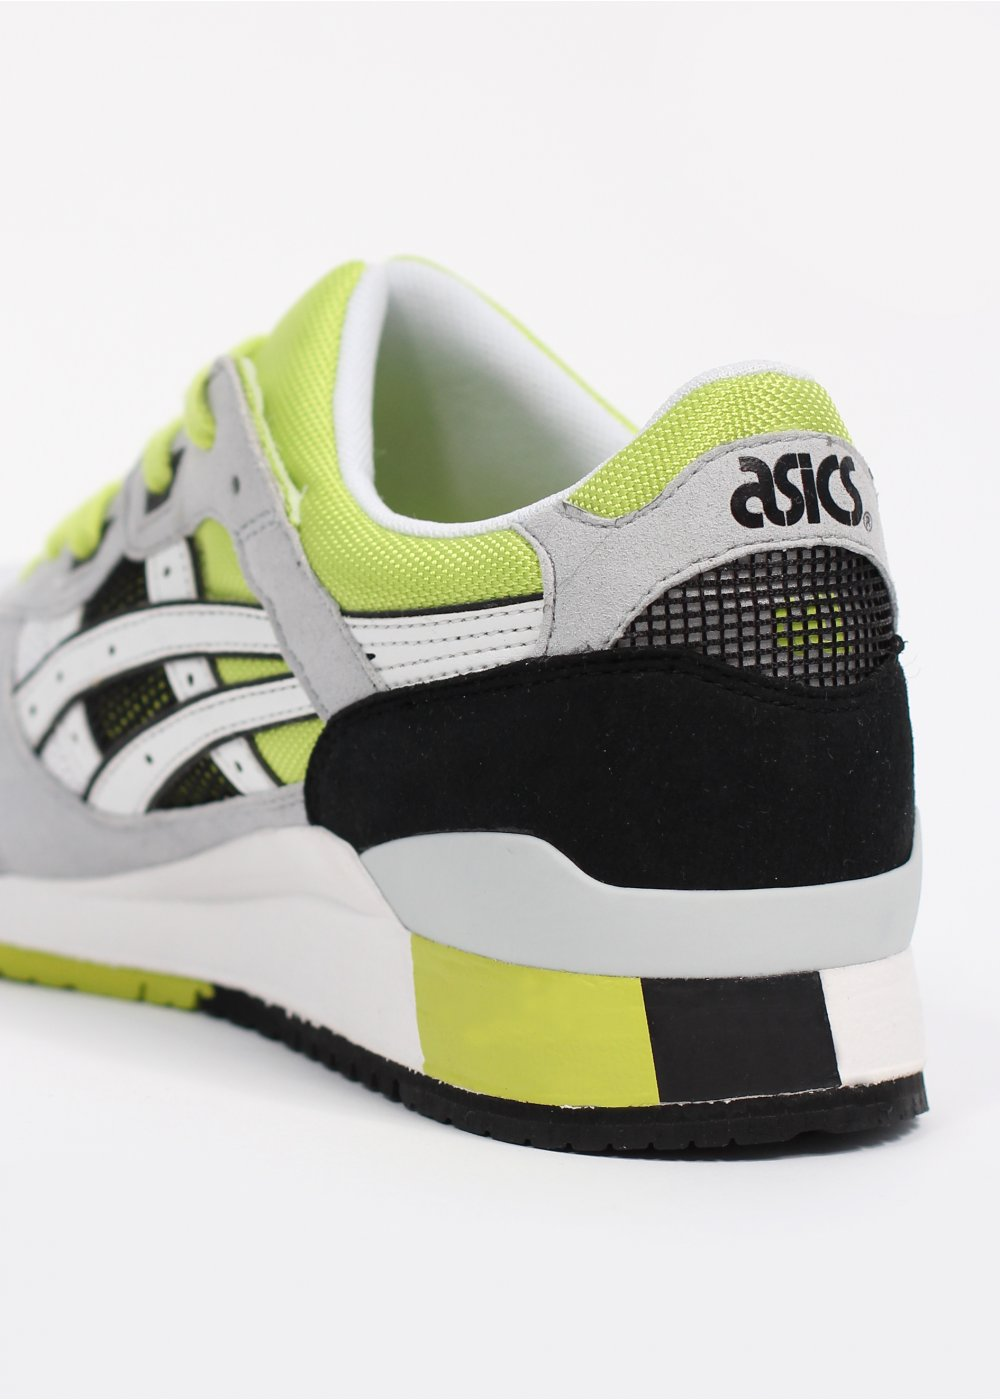 asics gel lyte iii trainers white. Black Bedroom Furniture Sets. Home Design Ideas